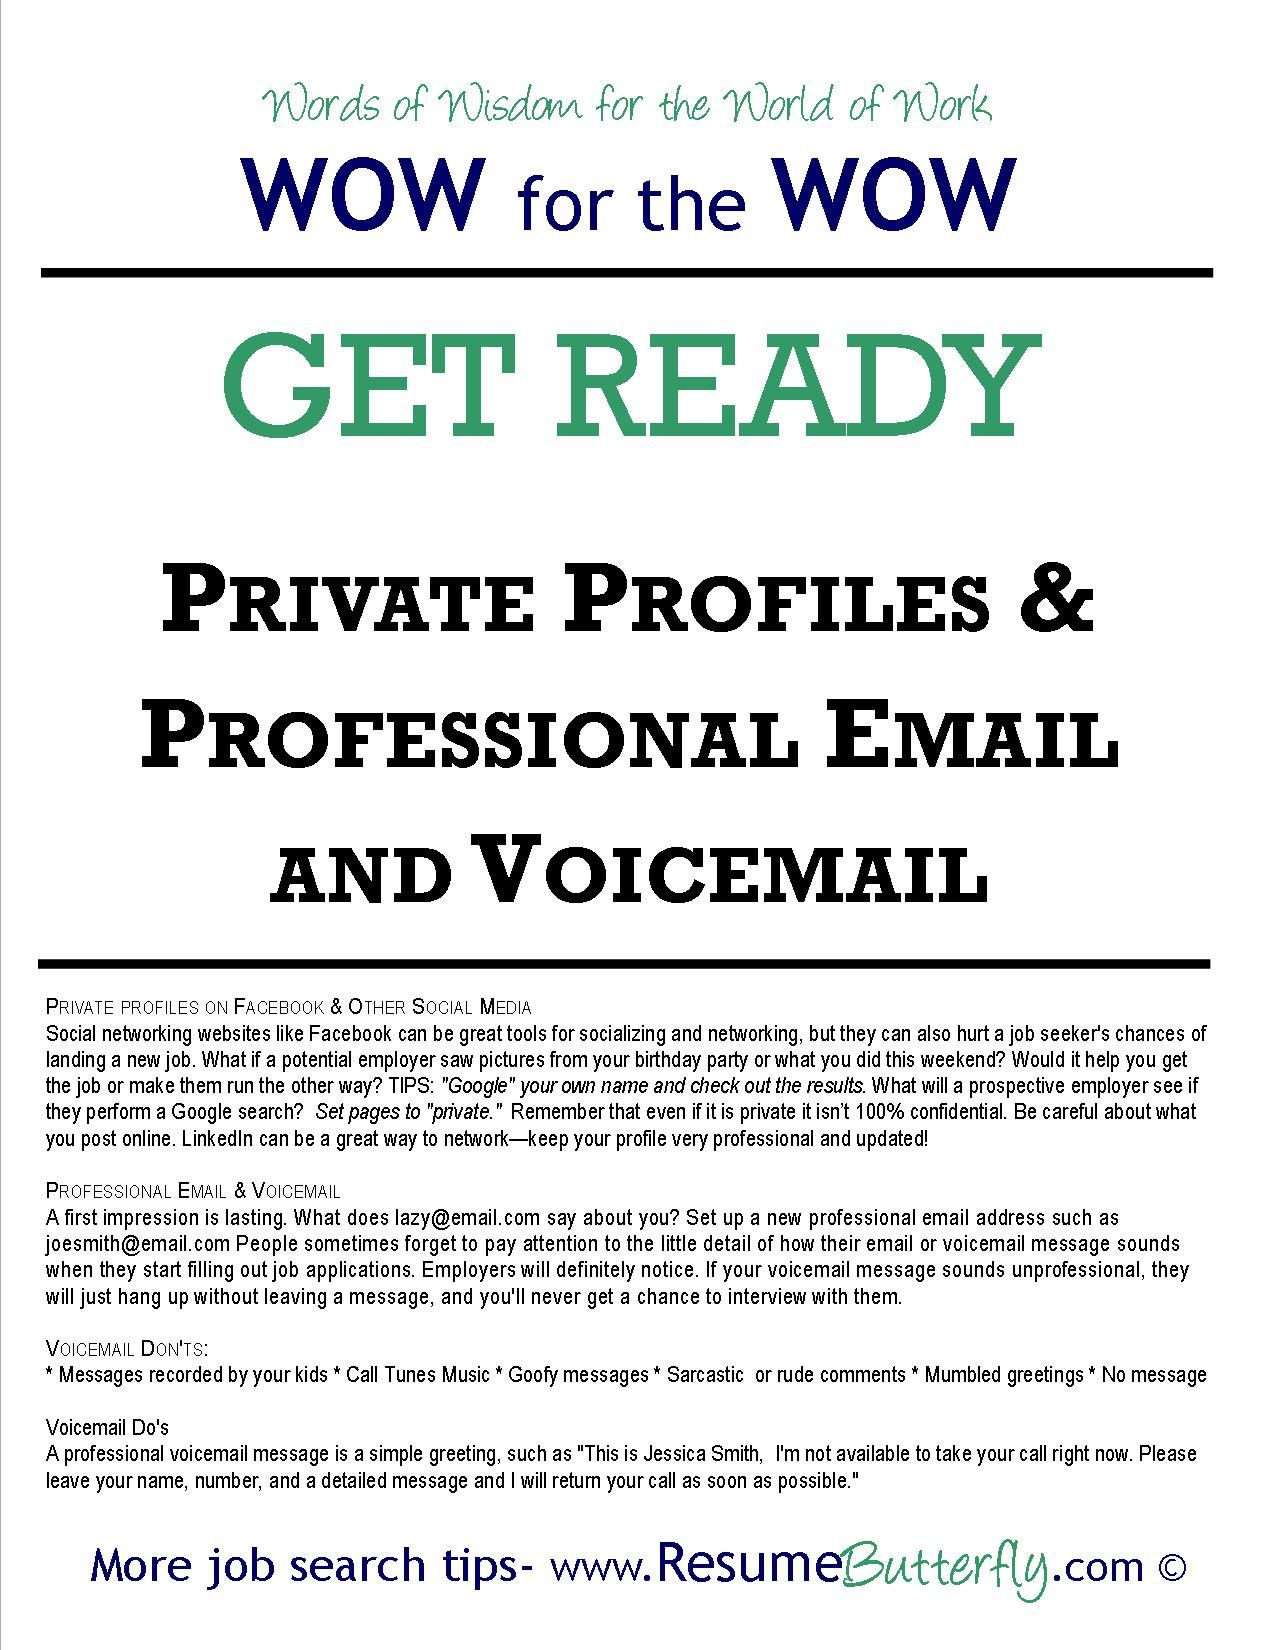 Job Search - GET READY: Private Profiles & Professional Email and ...